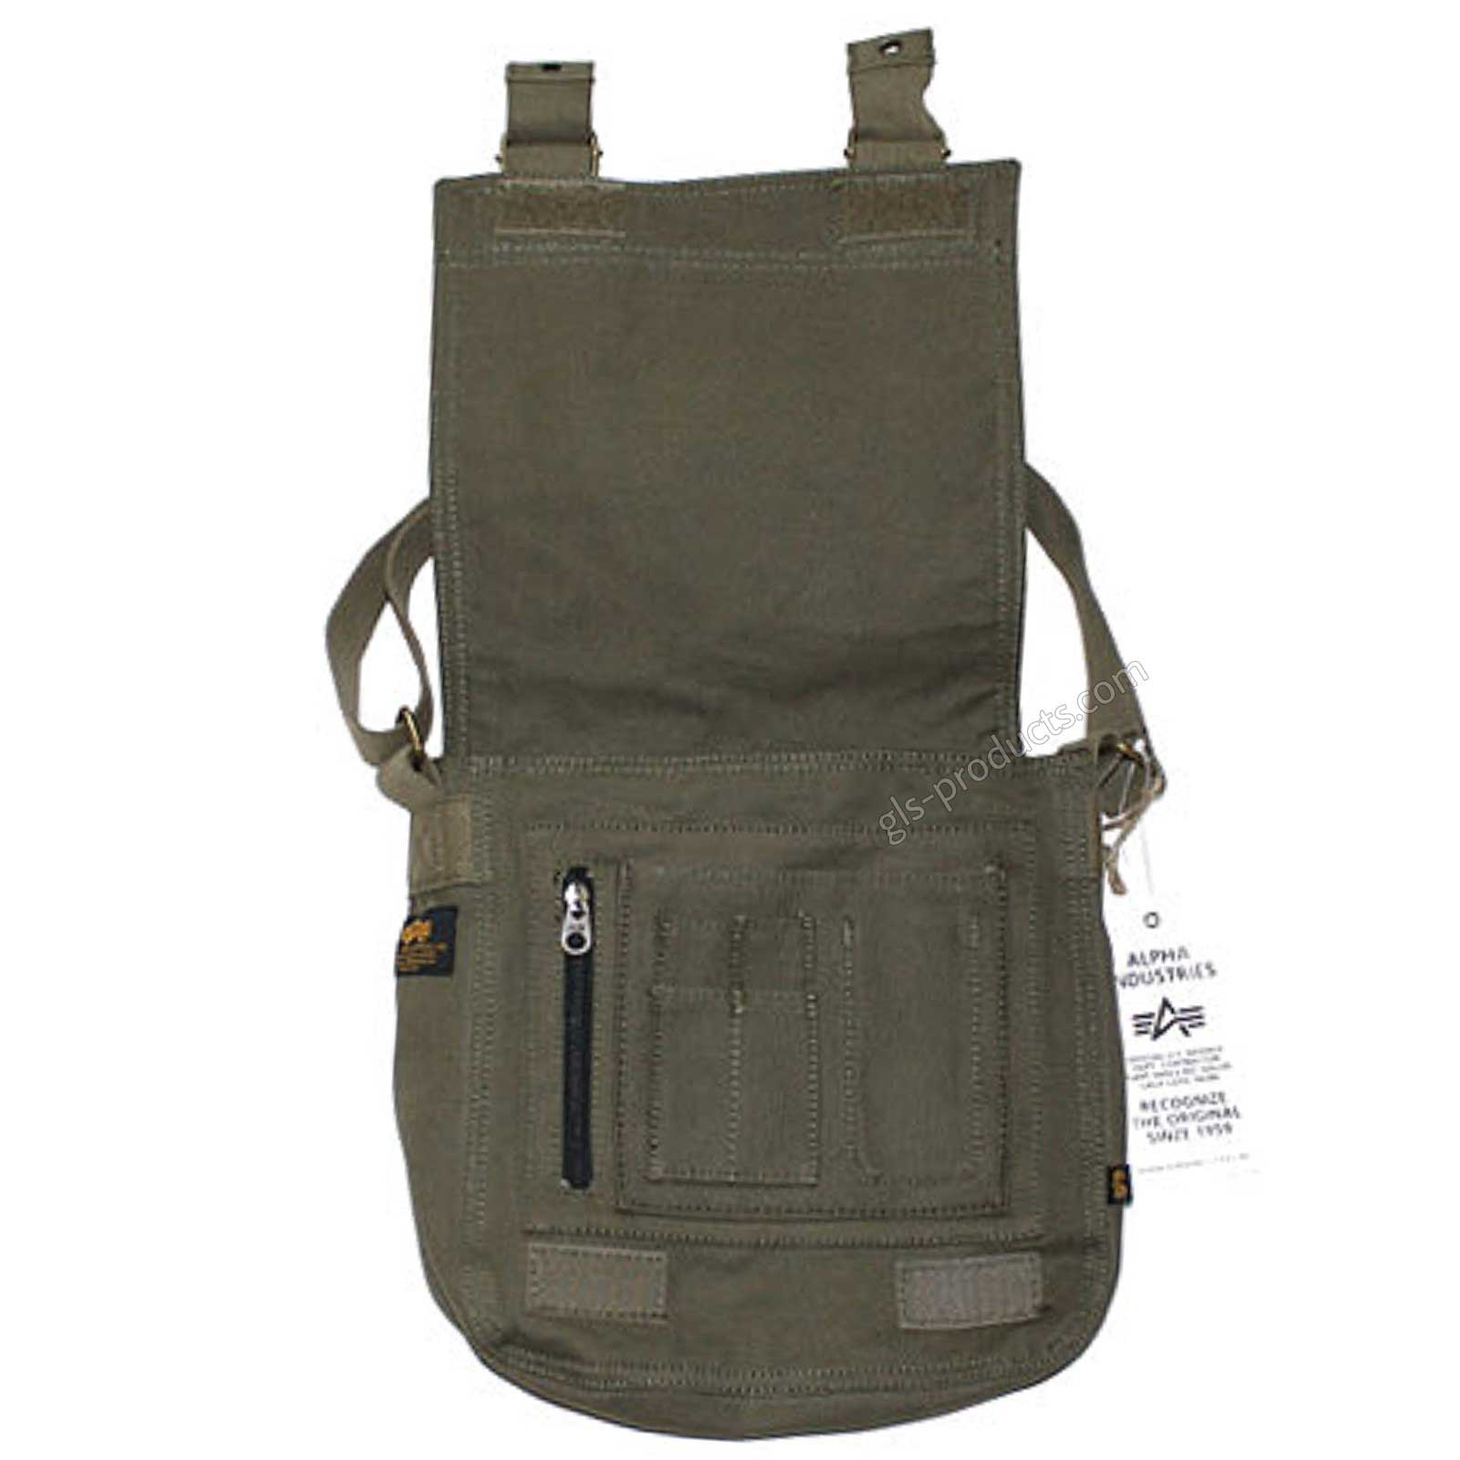 Alpha Industries Cargo Utility Bag 101912 101917 – Picture 4